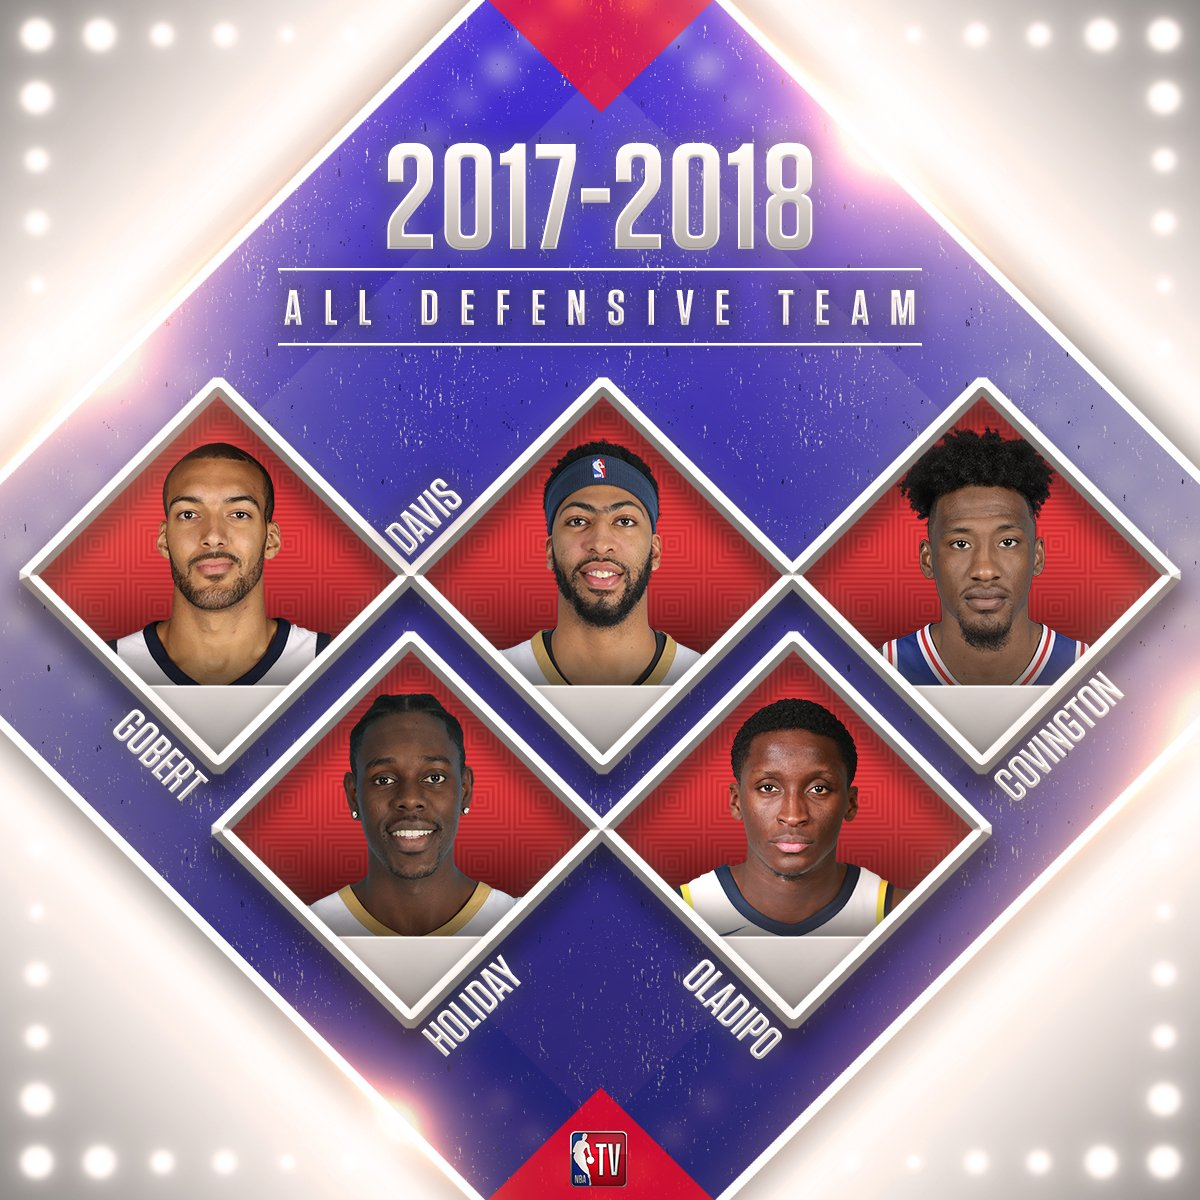 Rudy Gobert, Anthony Davis headline 2017-18 NBA All-Defensive first team  ➡️ MORE: https://t.co/taj6lF98n4 https://t.co/GTAsj1hkXw